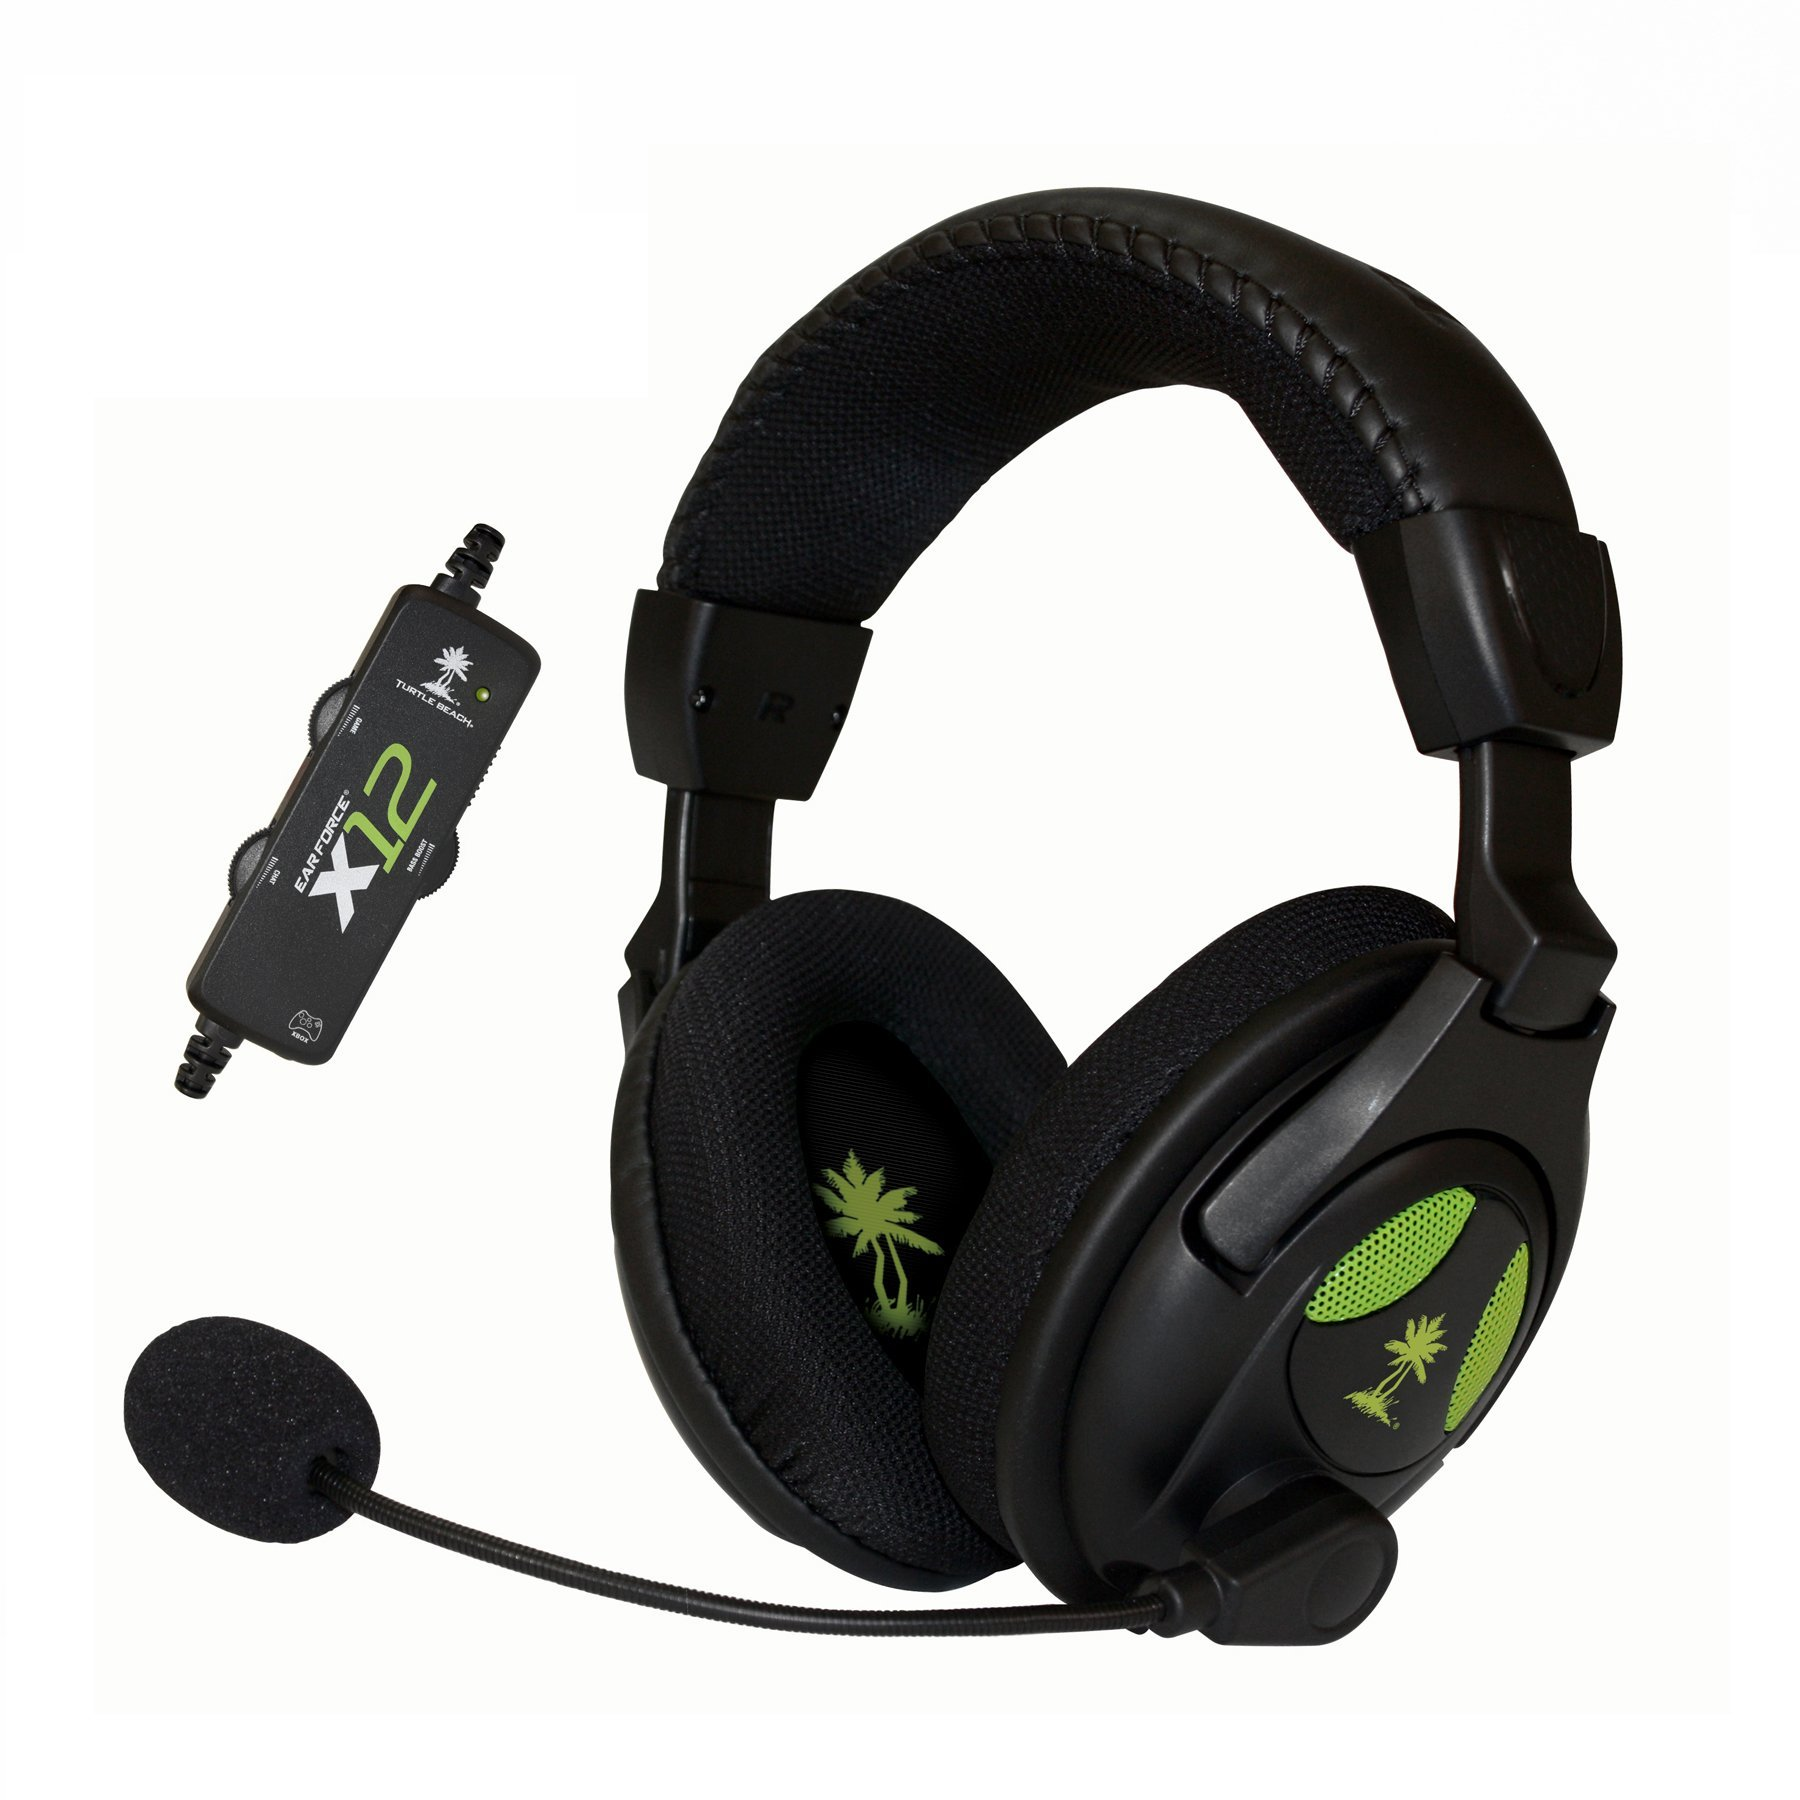 Turtle Beach - Ear Force X12 Amplified Stereo Gaming Headset - Xbox 360 (Discontinued by Manufacturer) (Renewed) by Turtle Beach